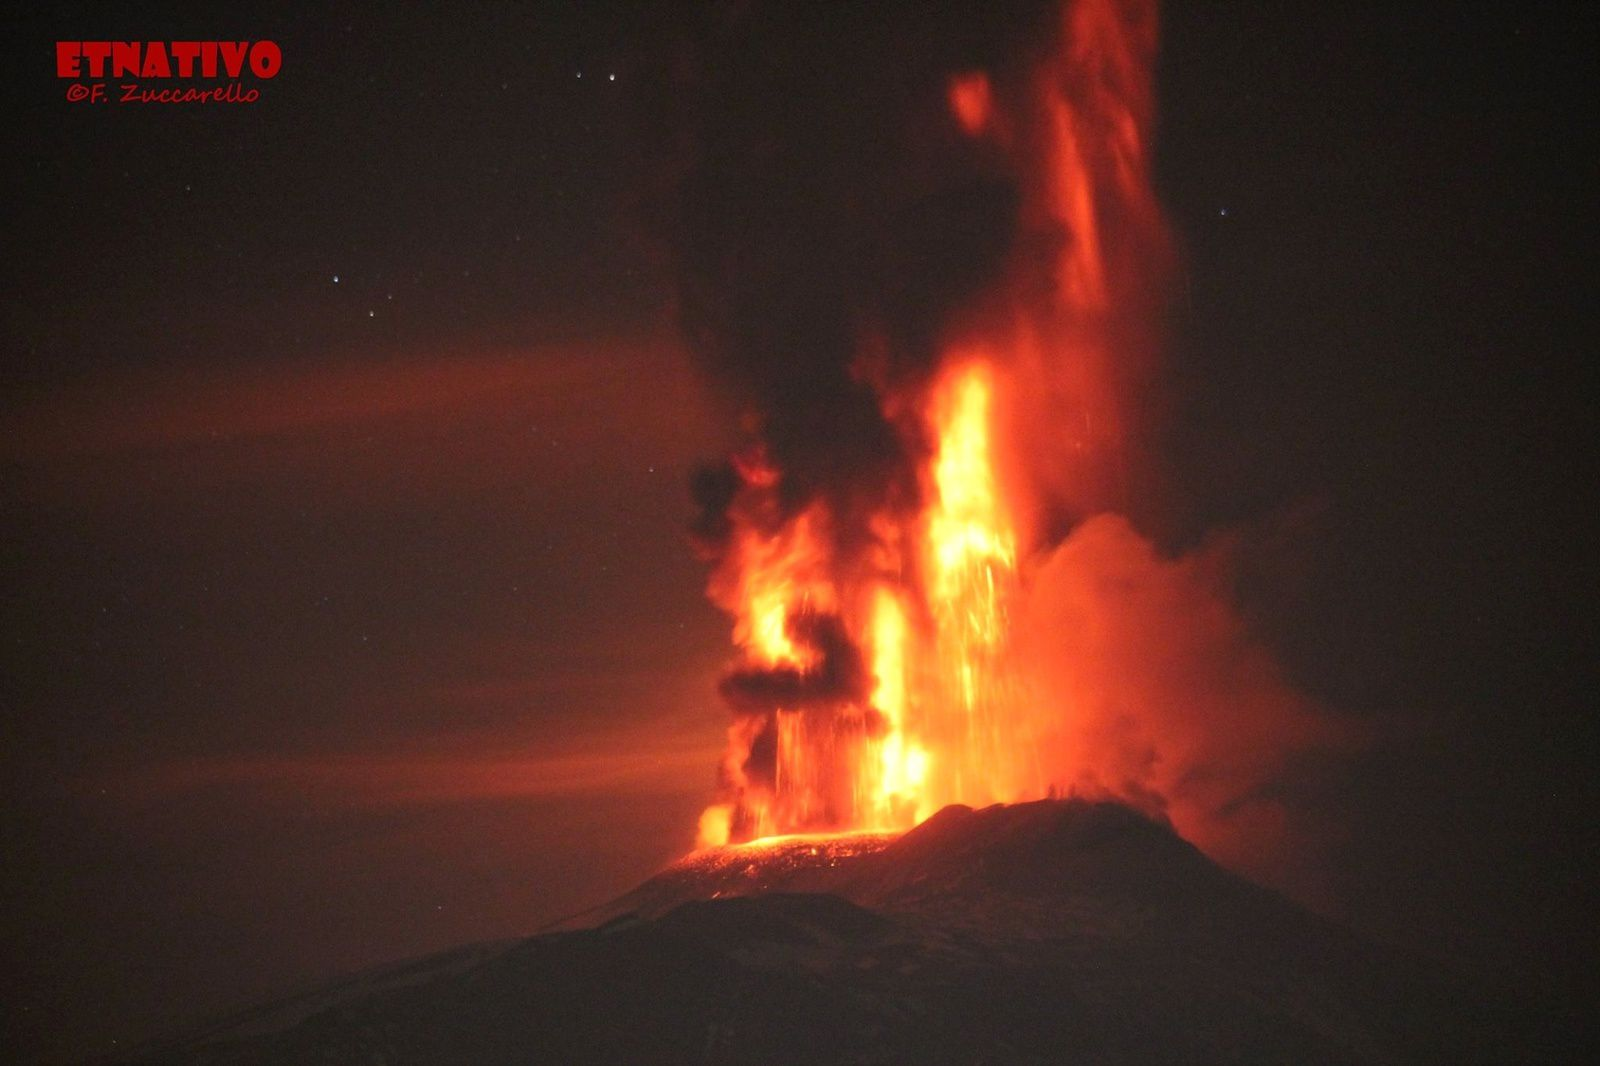 Etna - Voragine - the climax 03.12.2015 - photo Fabricio Zucccarello / Etnativo